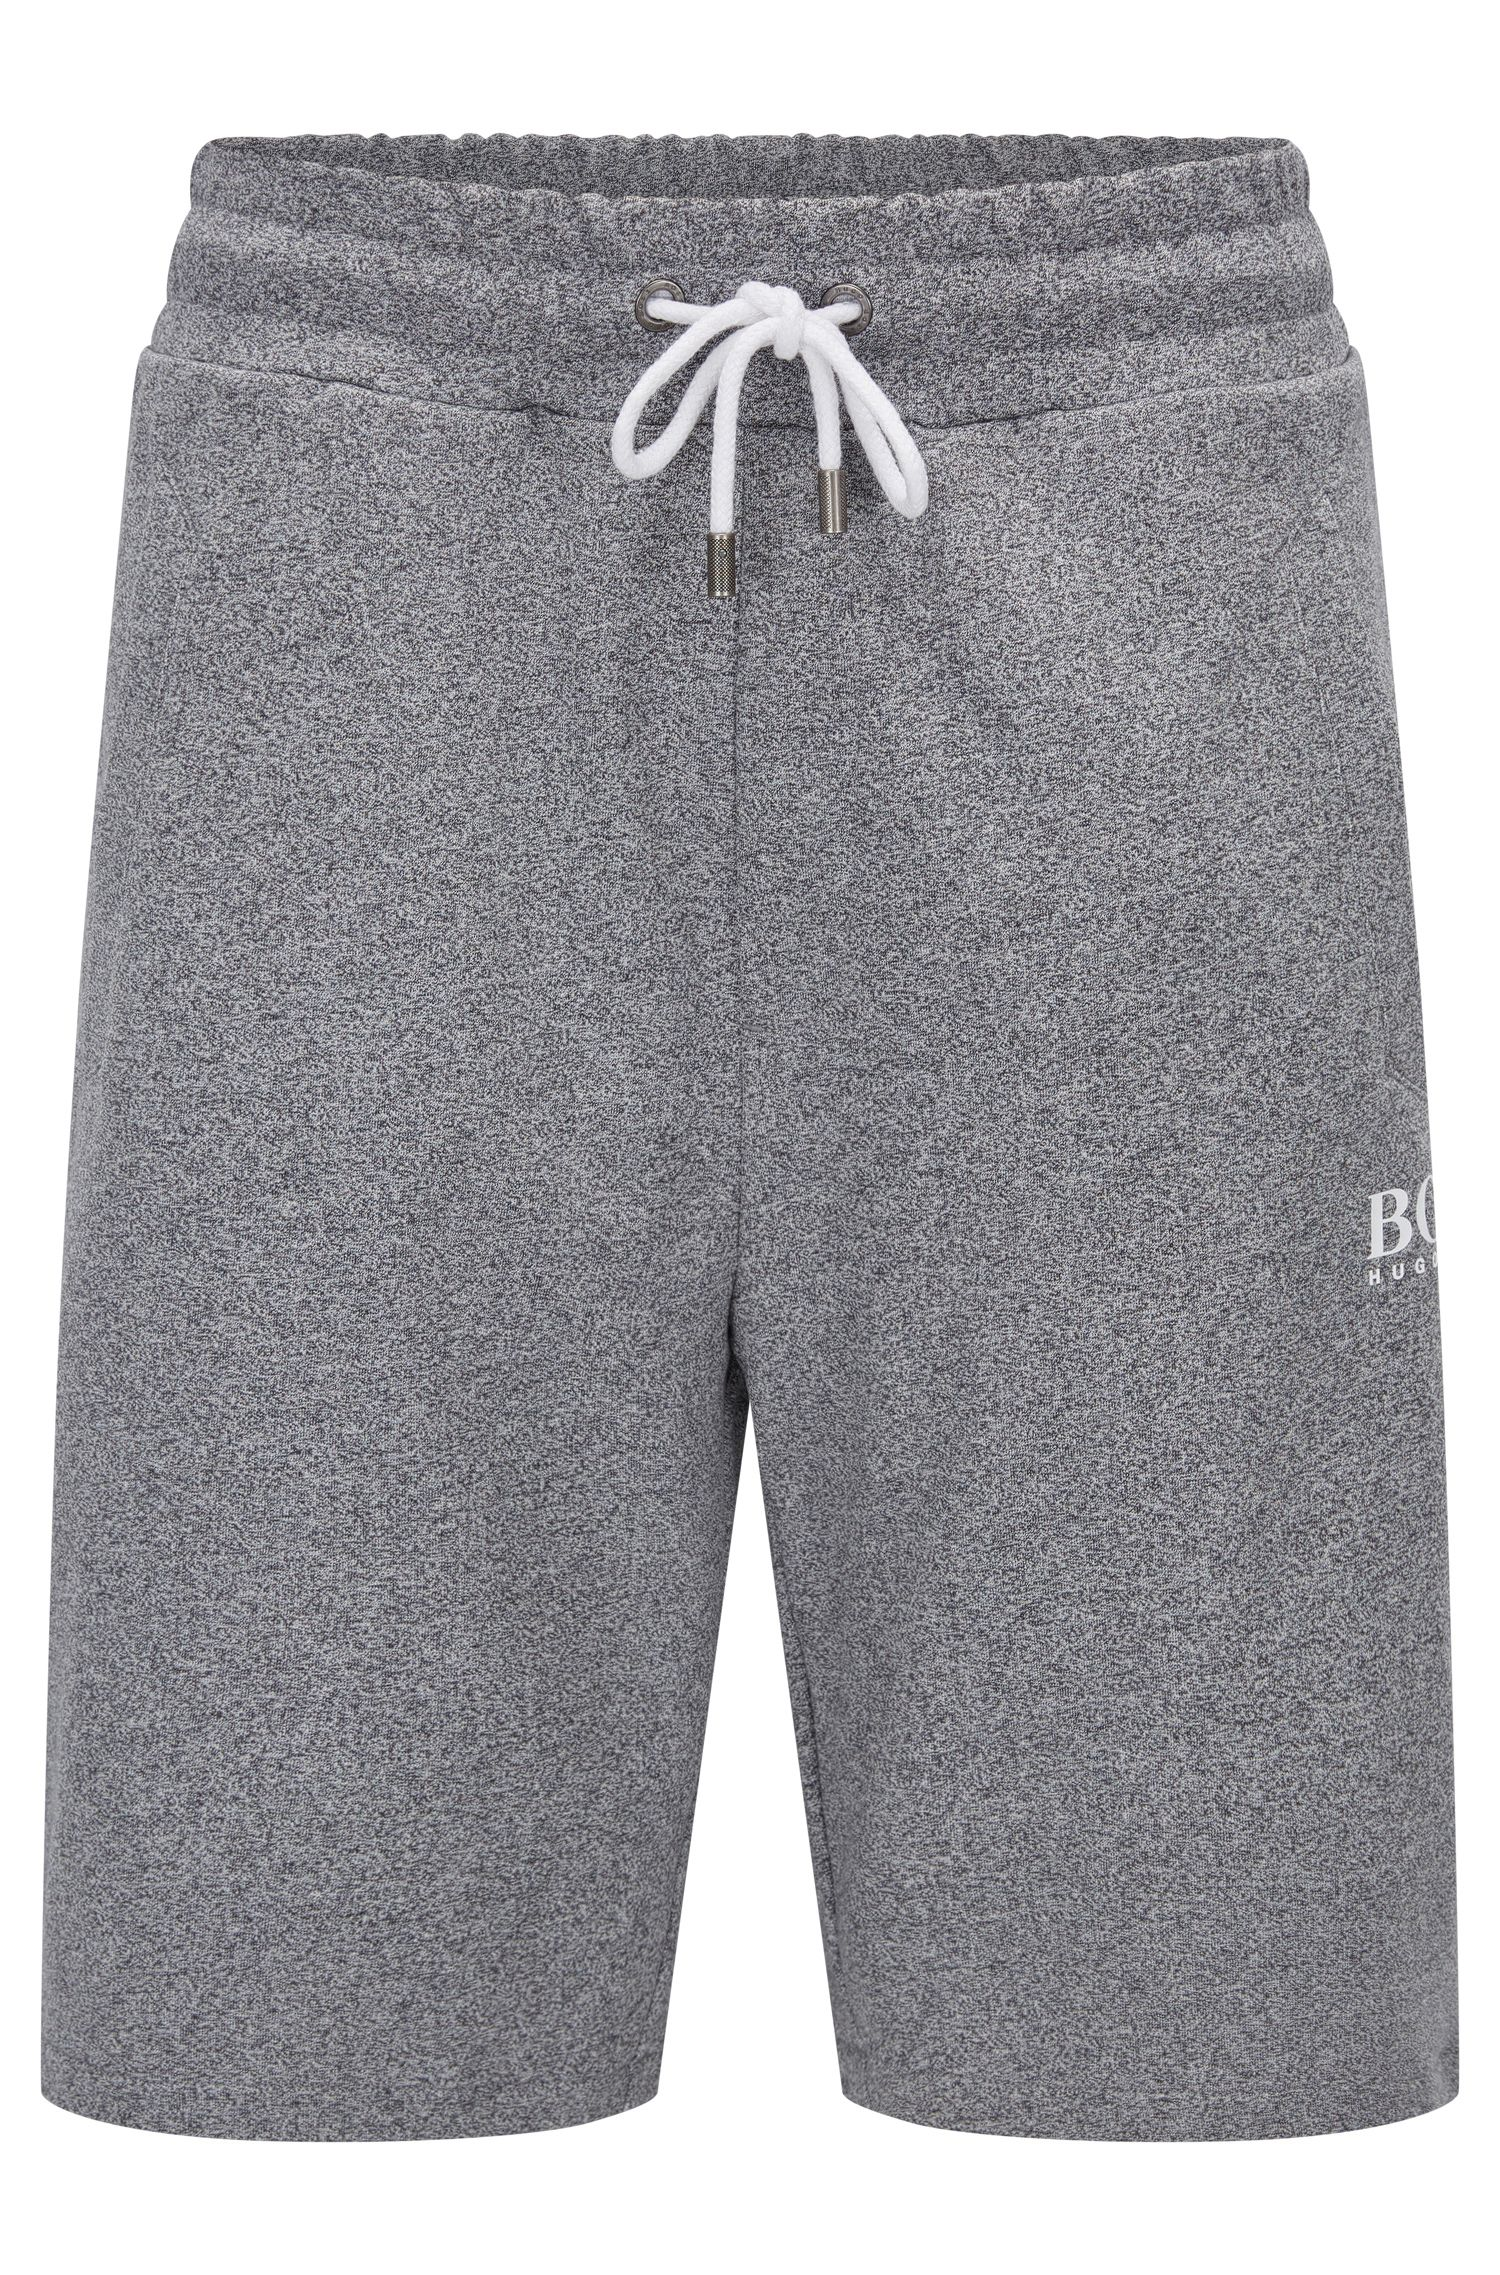 Loungewear shorts in French terry